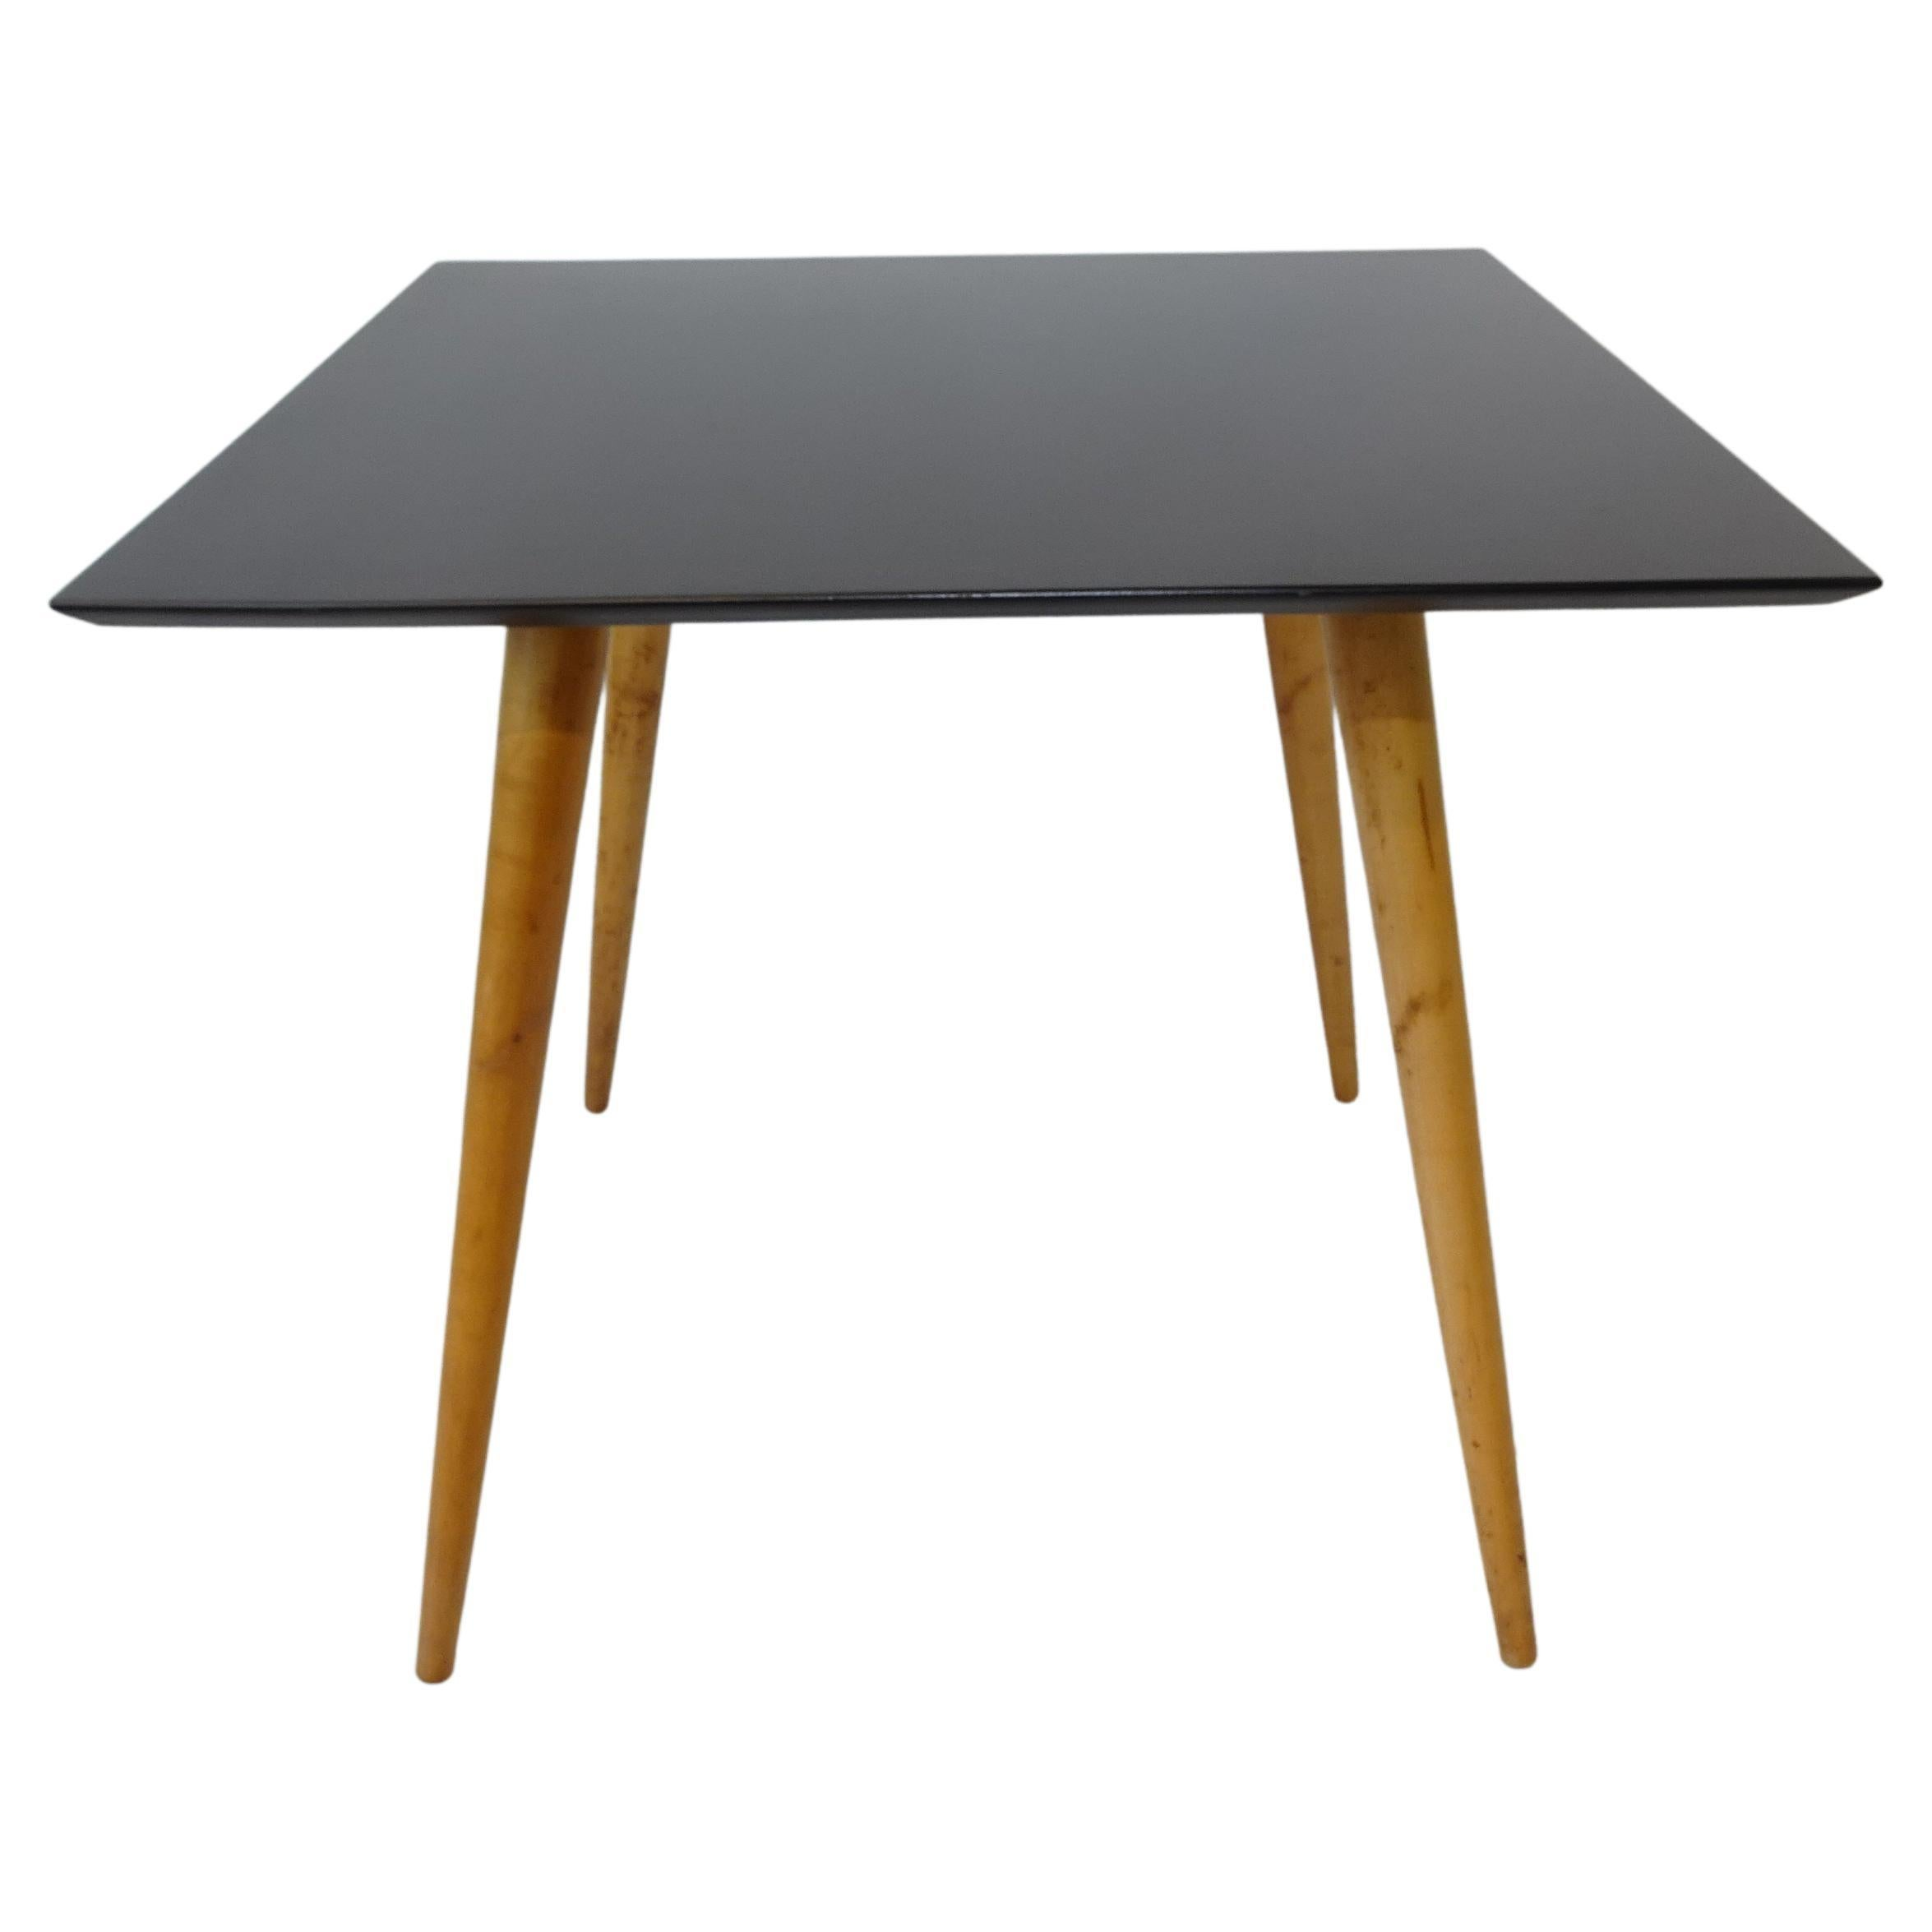 Paul McCobb Small Dining / Game Table for Planner Group